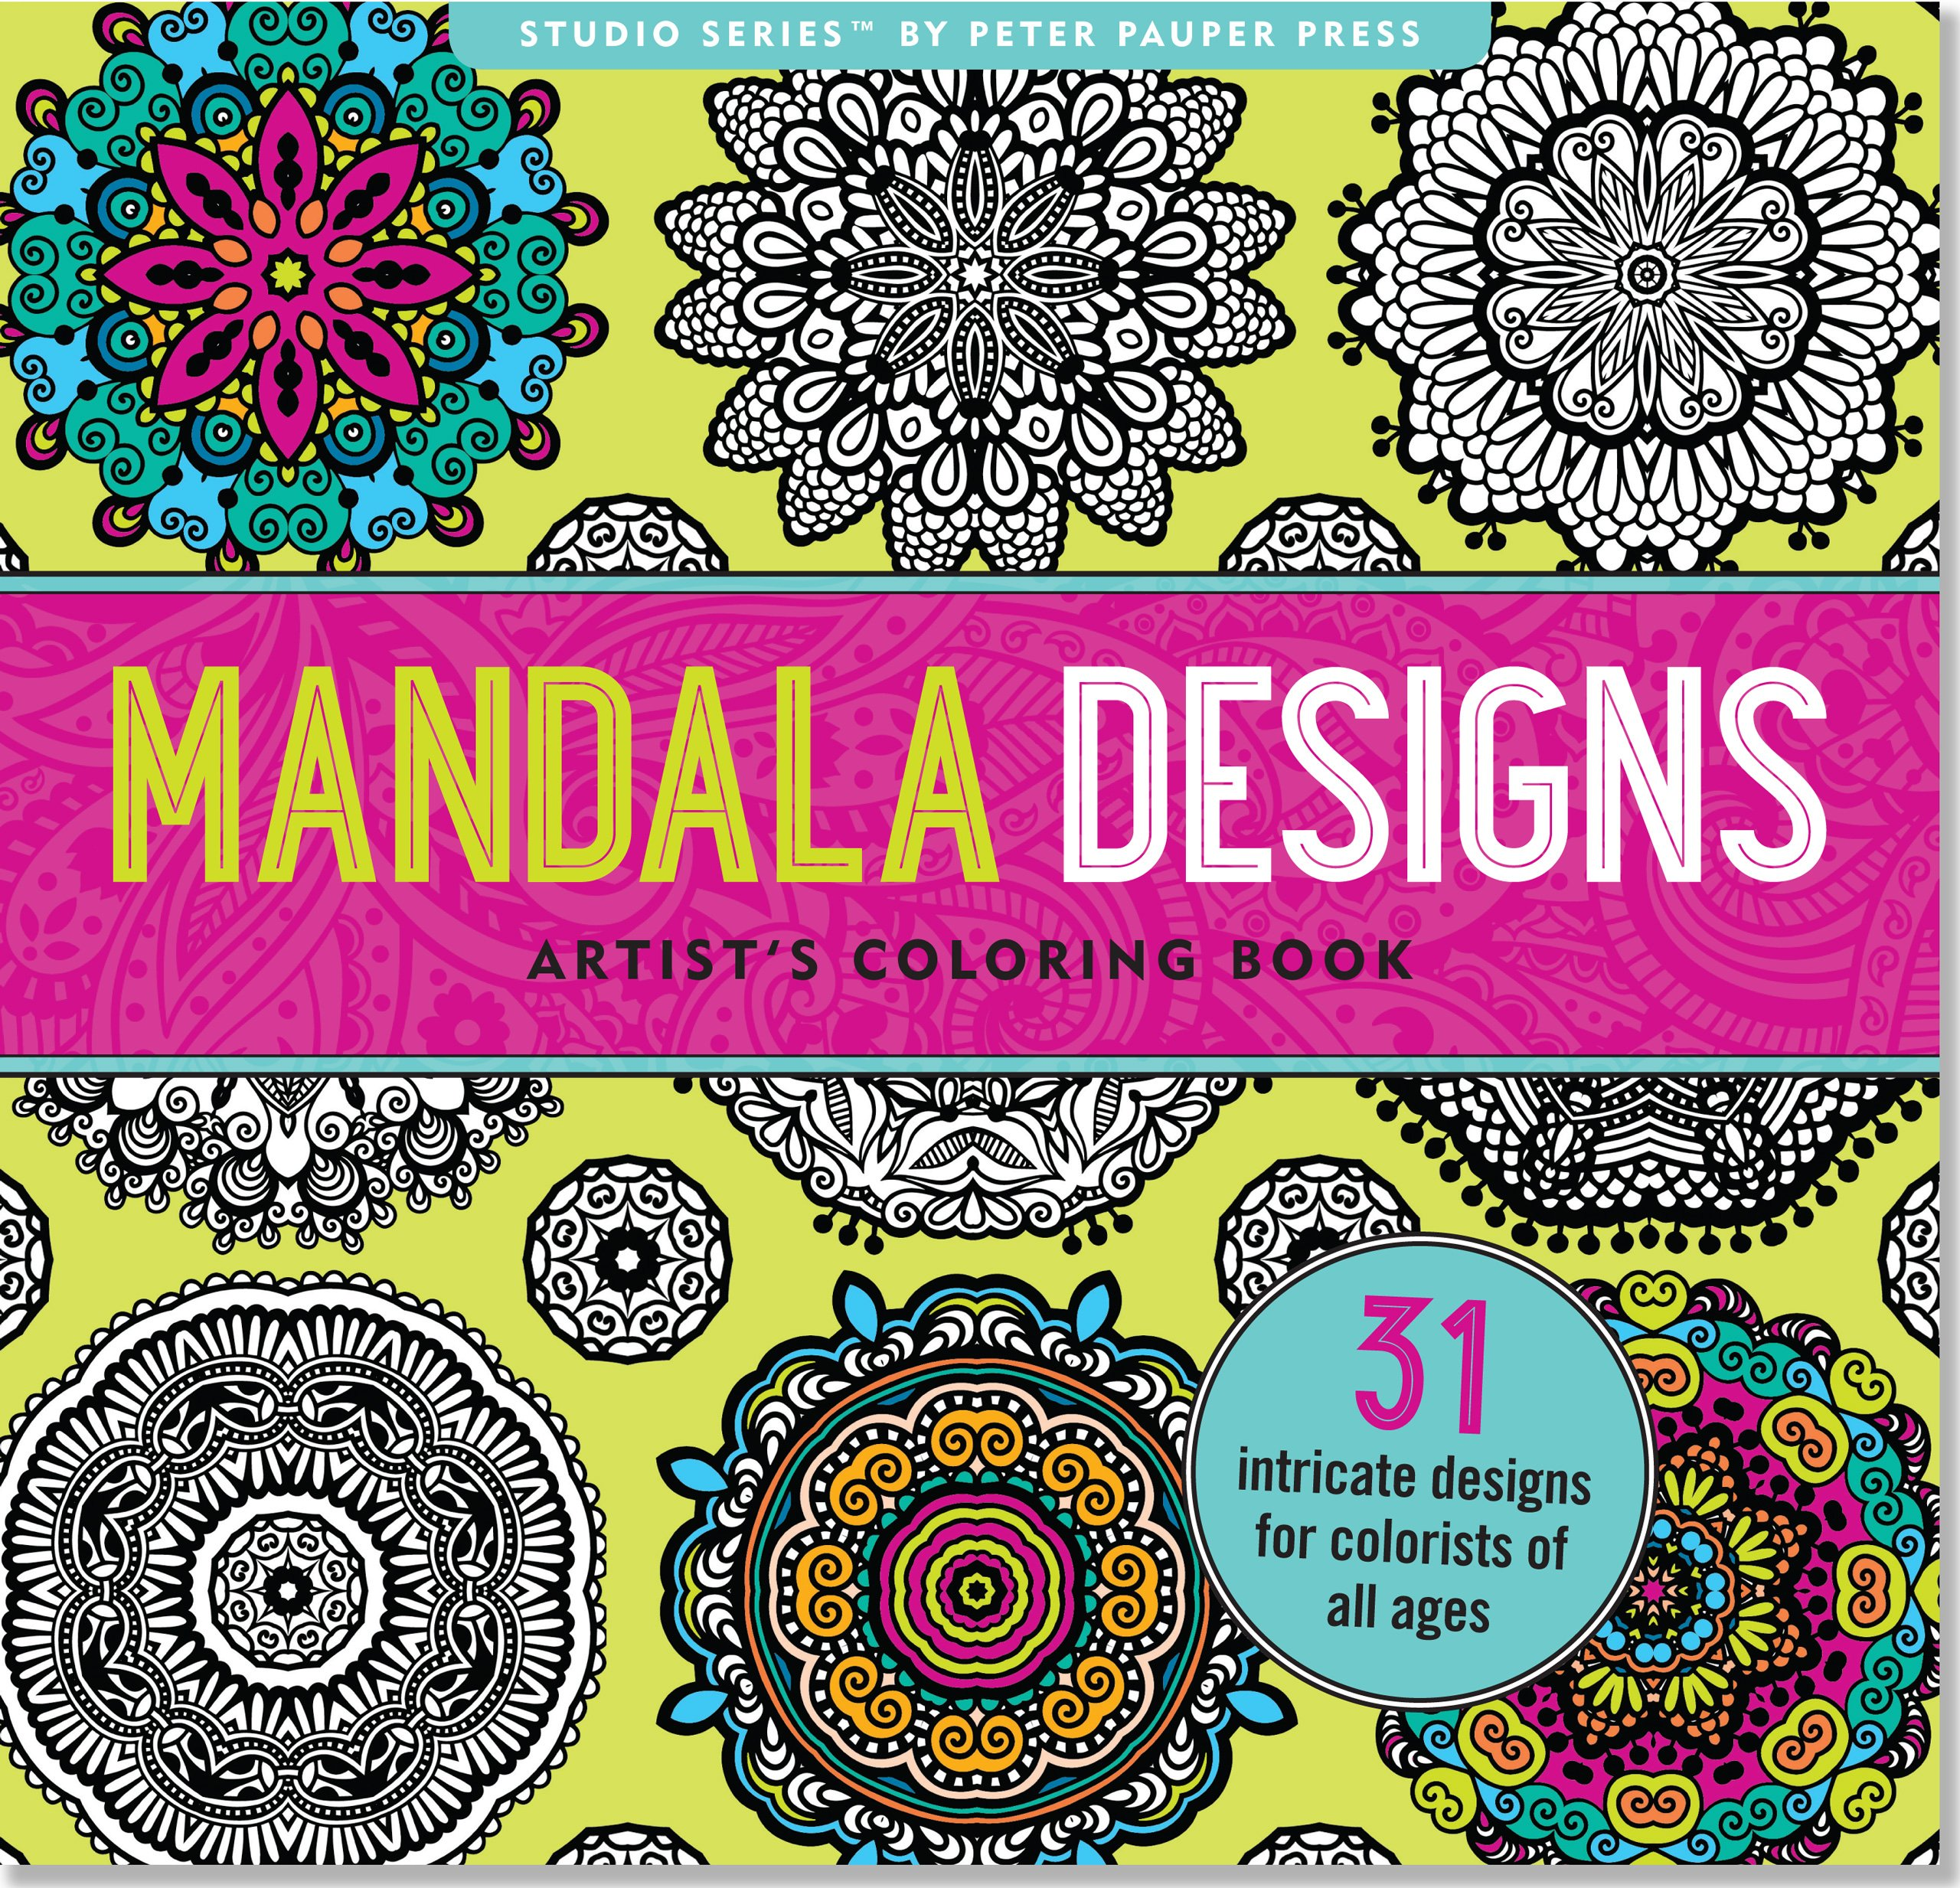 Mandala Designs Adult Coloring Book By Peter Pauper Press